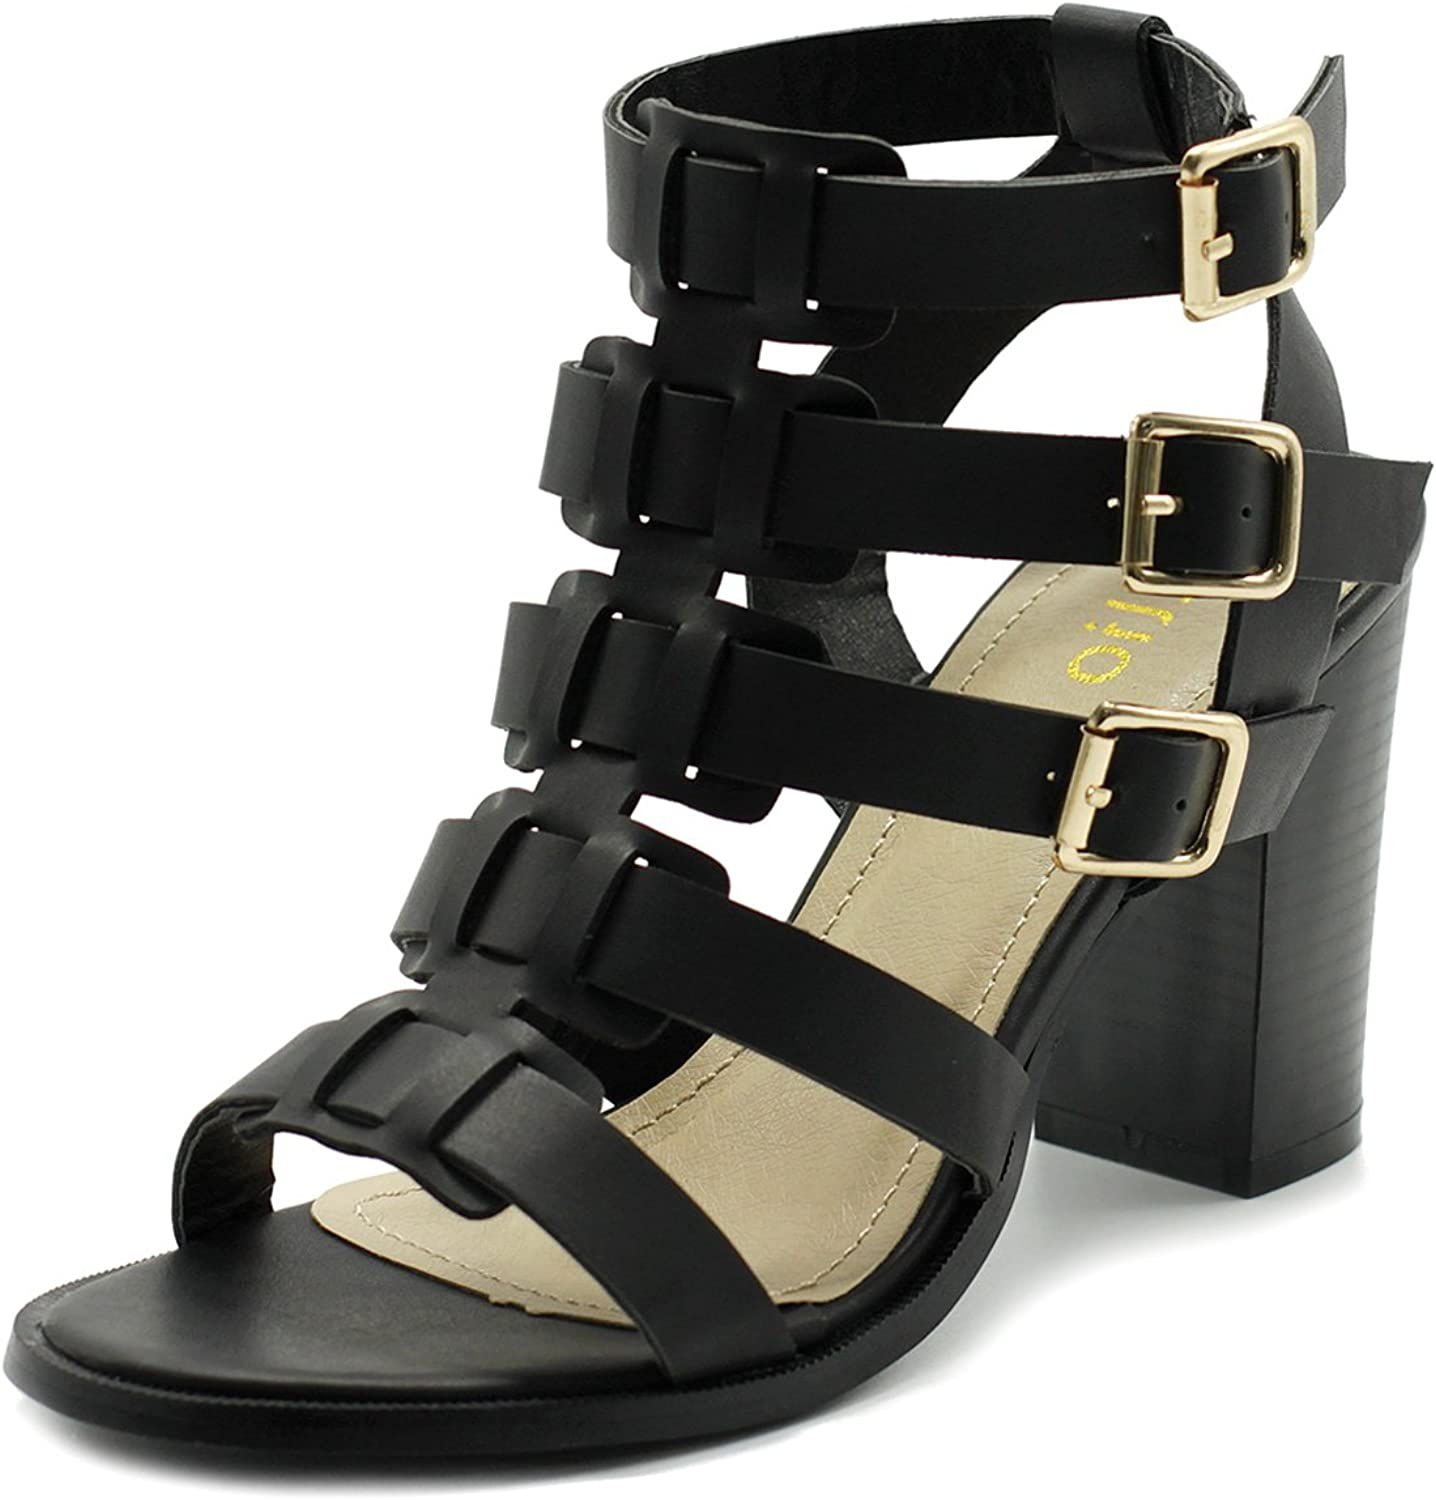 Ollio Womens shoes Gladiator Ankle High Bootie Sandal